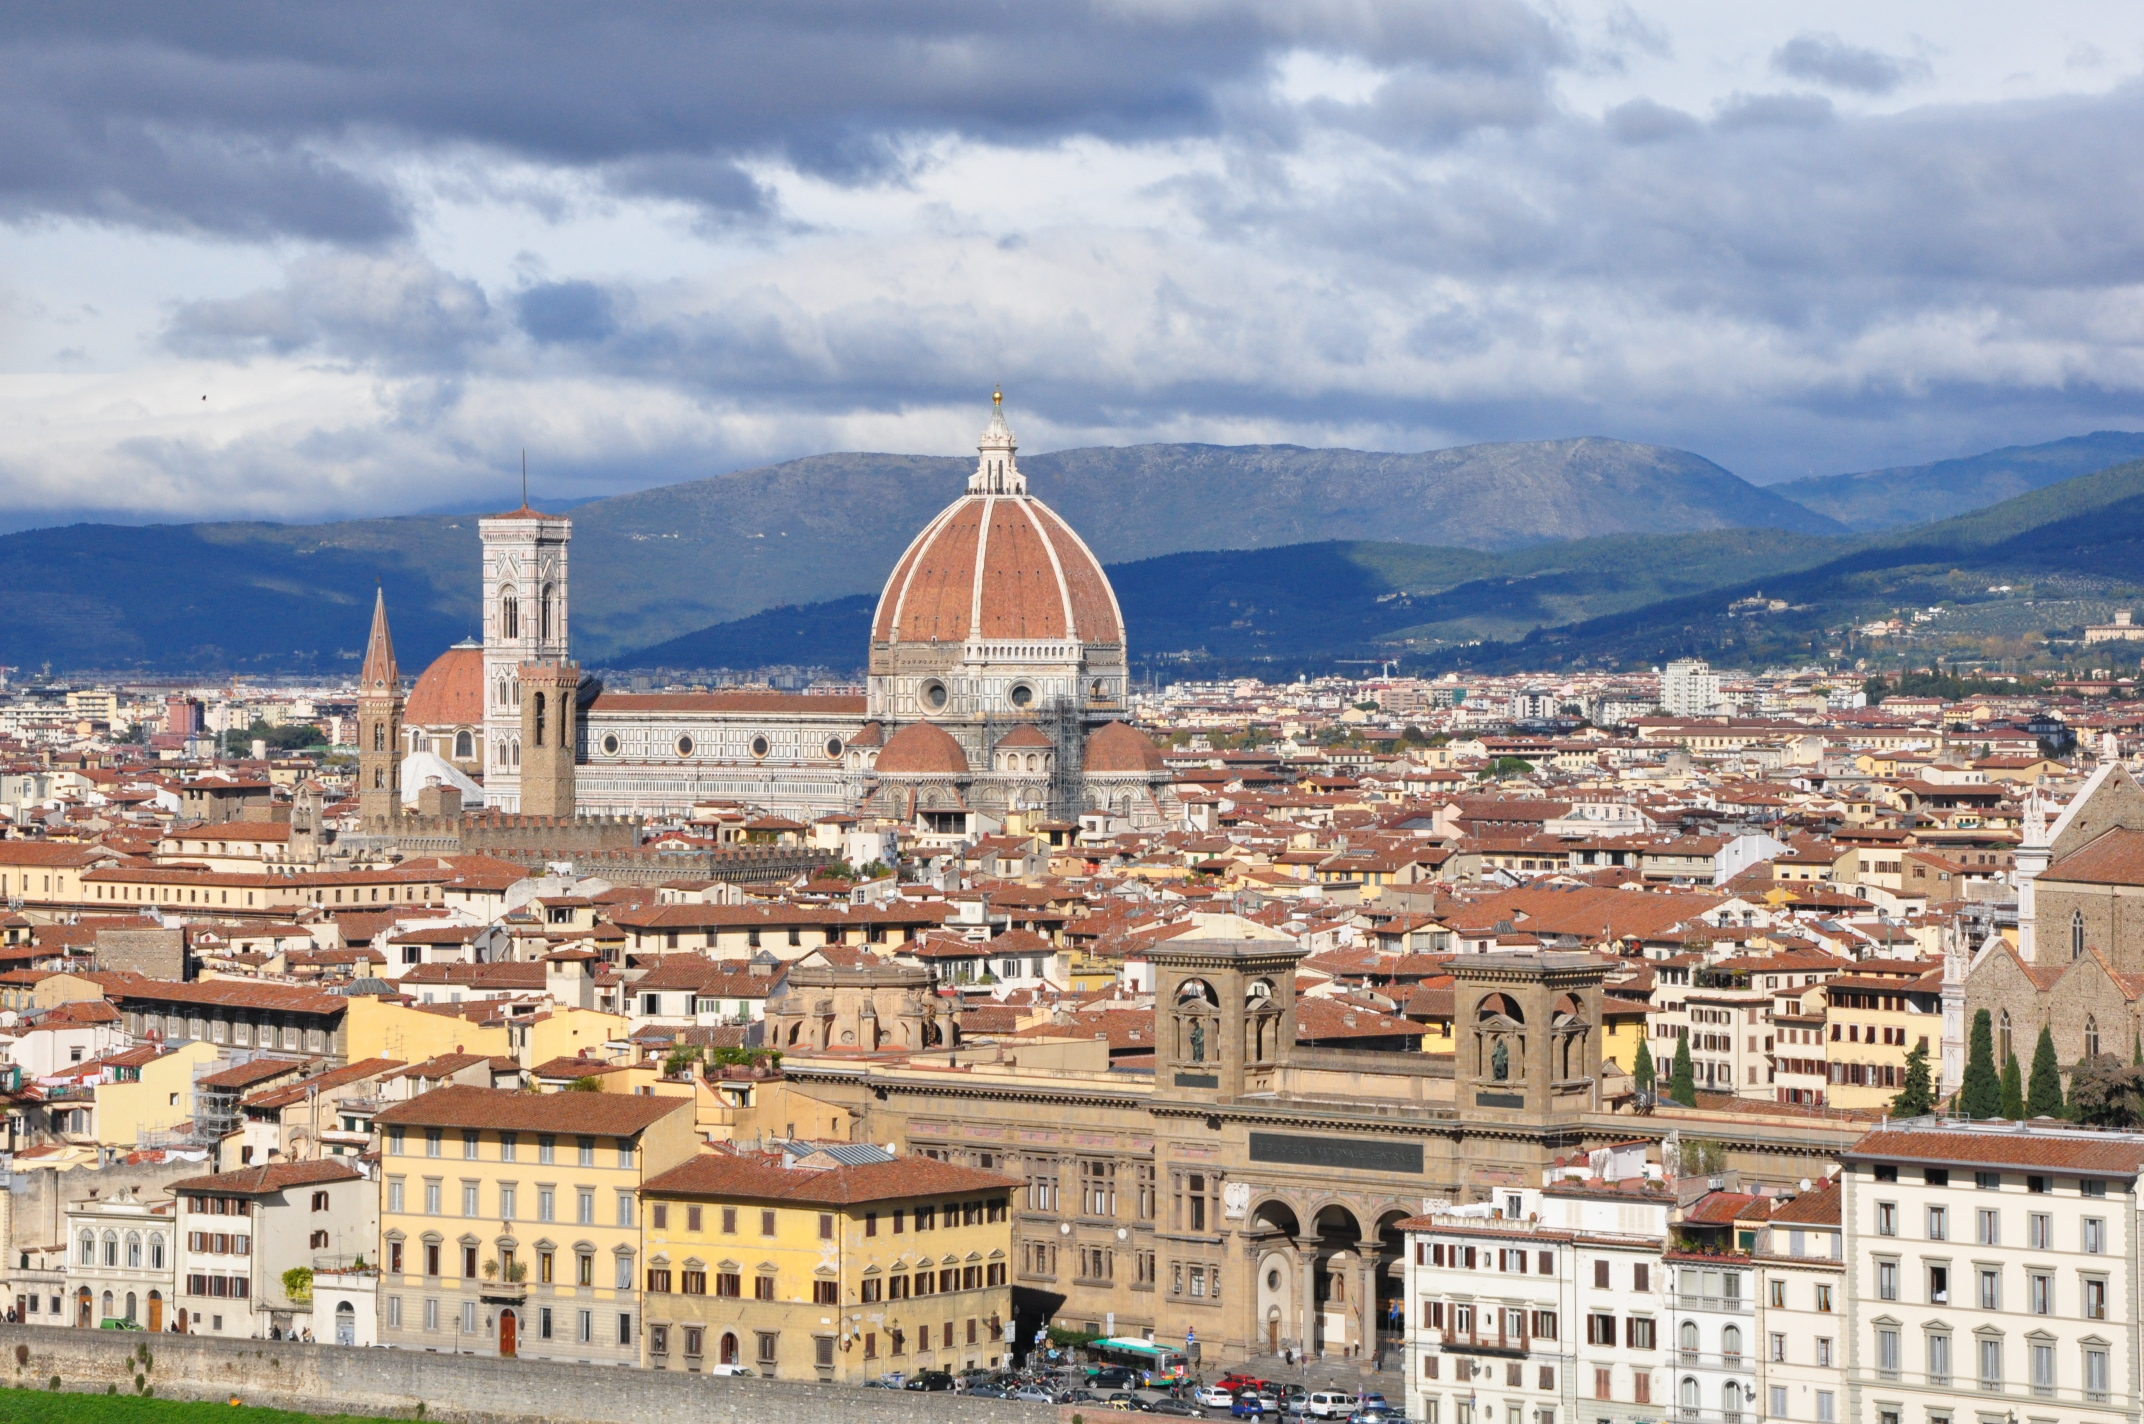 Italian Florence: 10 Of The Most Beautiful Cities In Italy